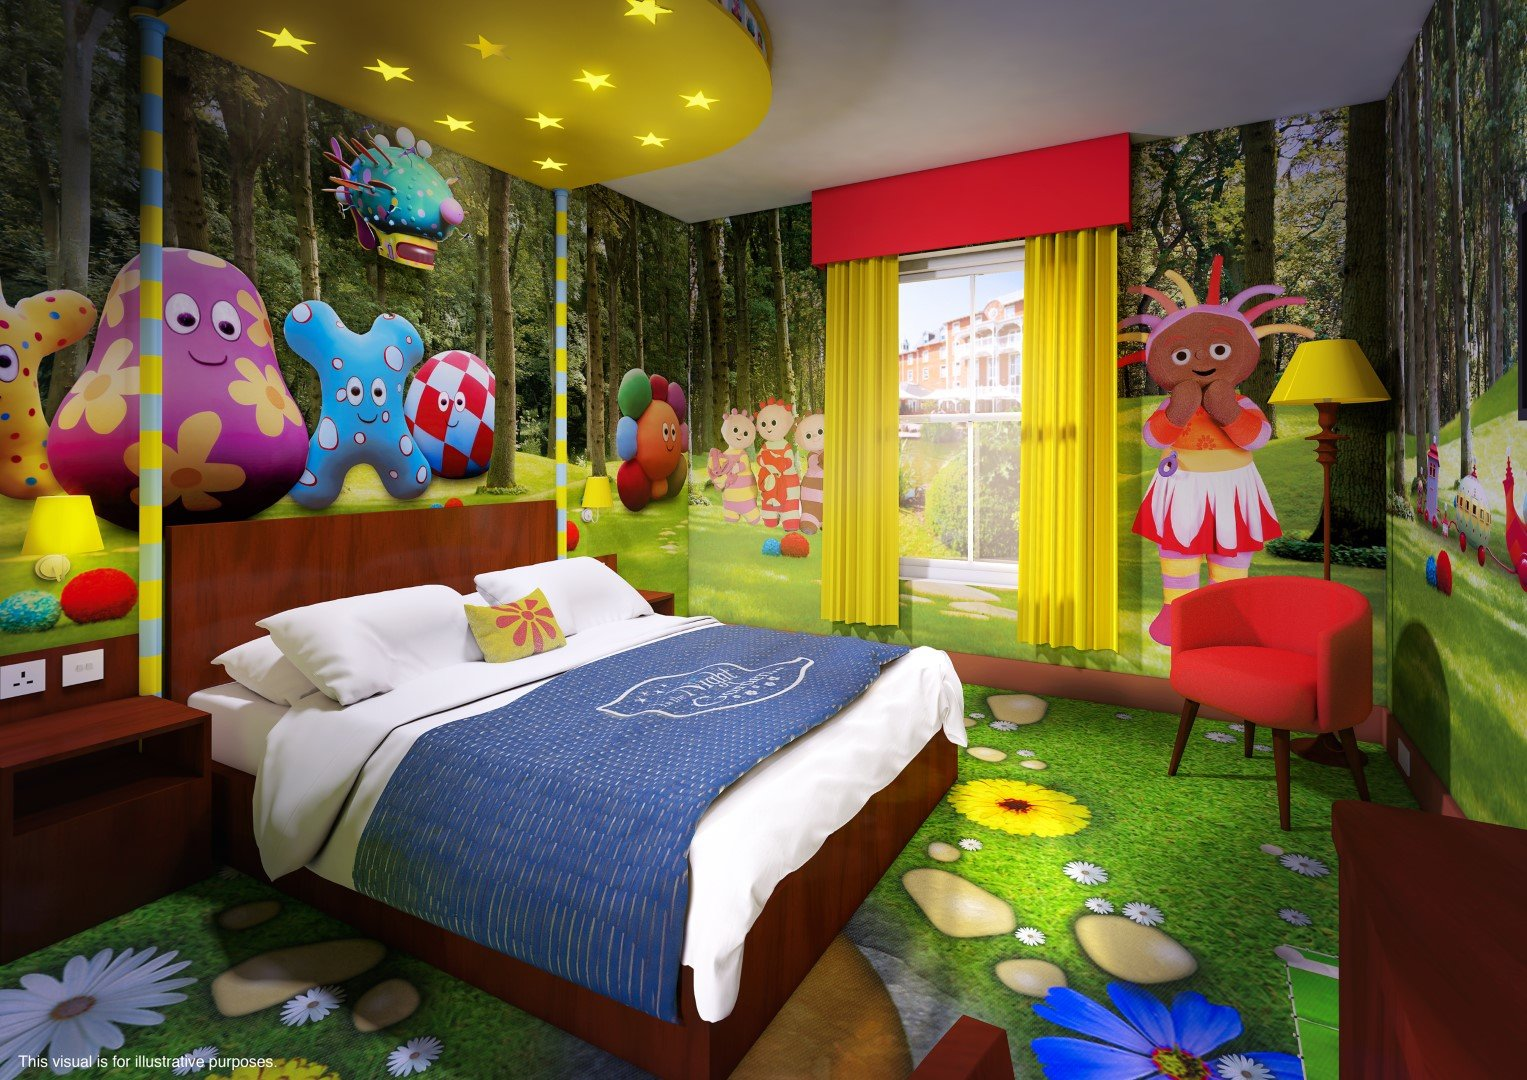 Garden Bedroom Decor – Home Design And Decorating